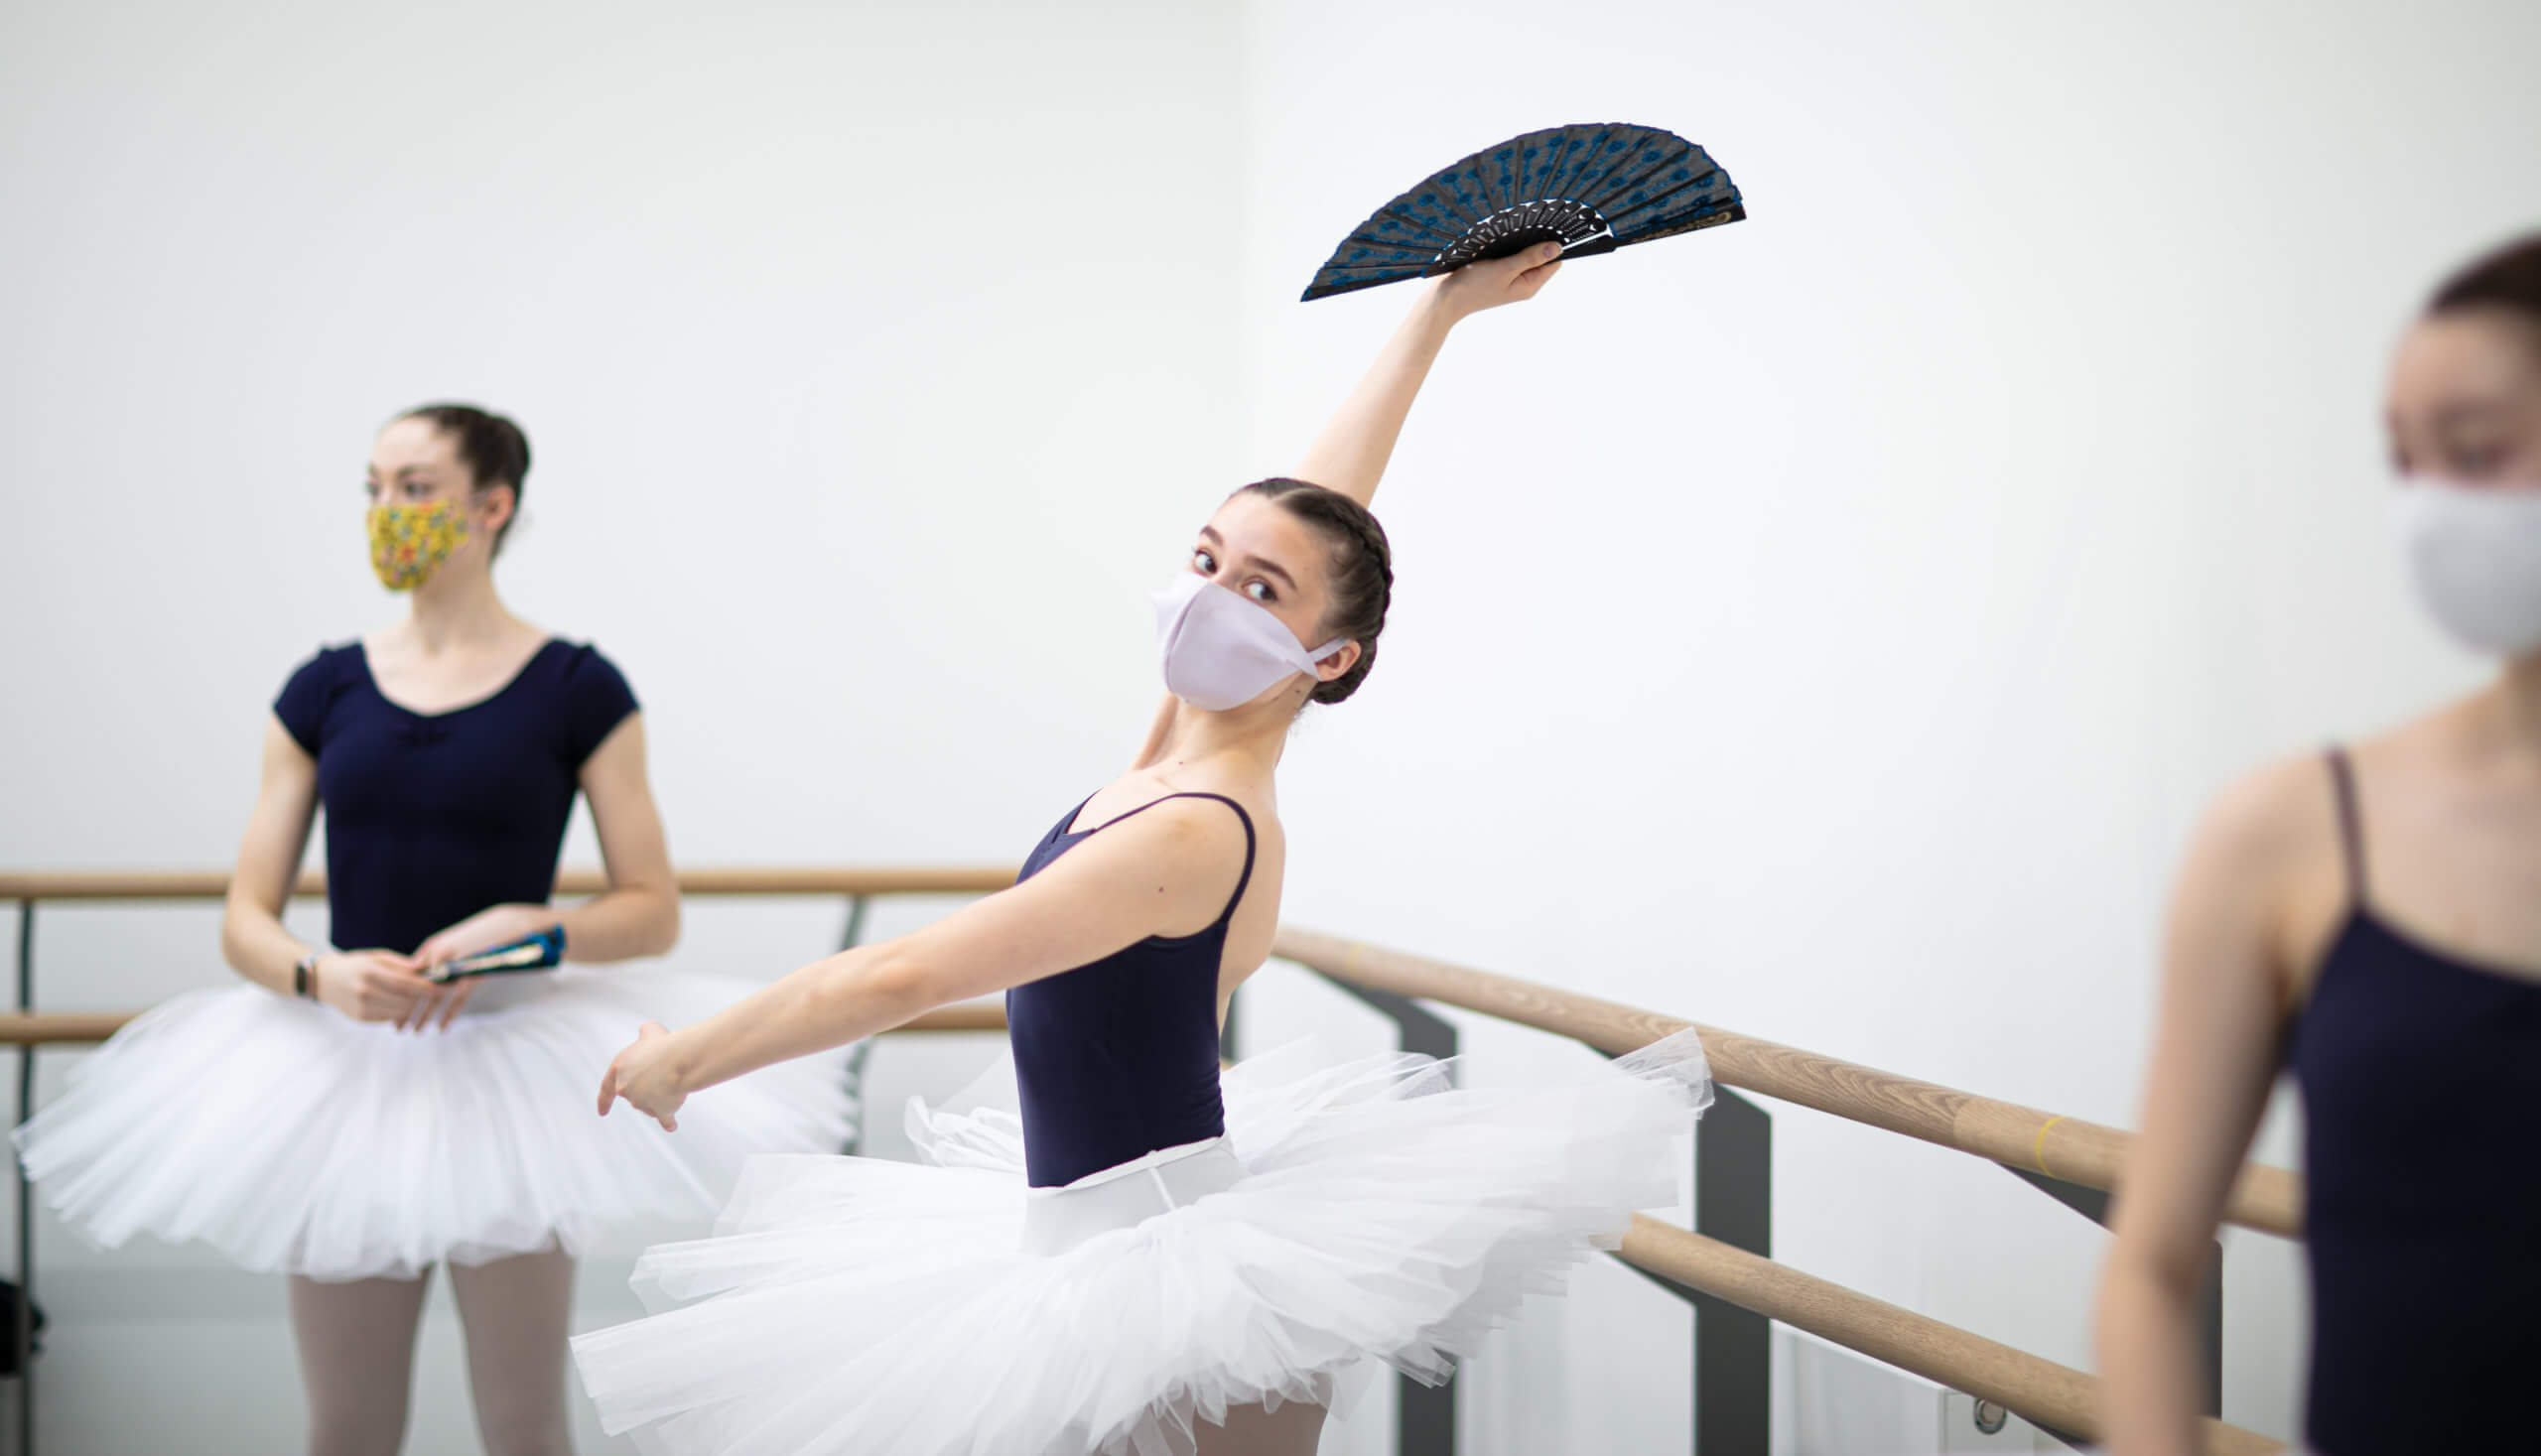 Three ballet dancers in the studio at Speirs Locks. The dancer in the centre is holding a fan aloft